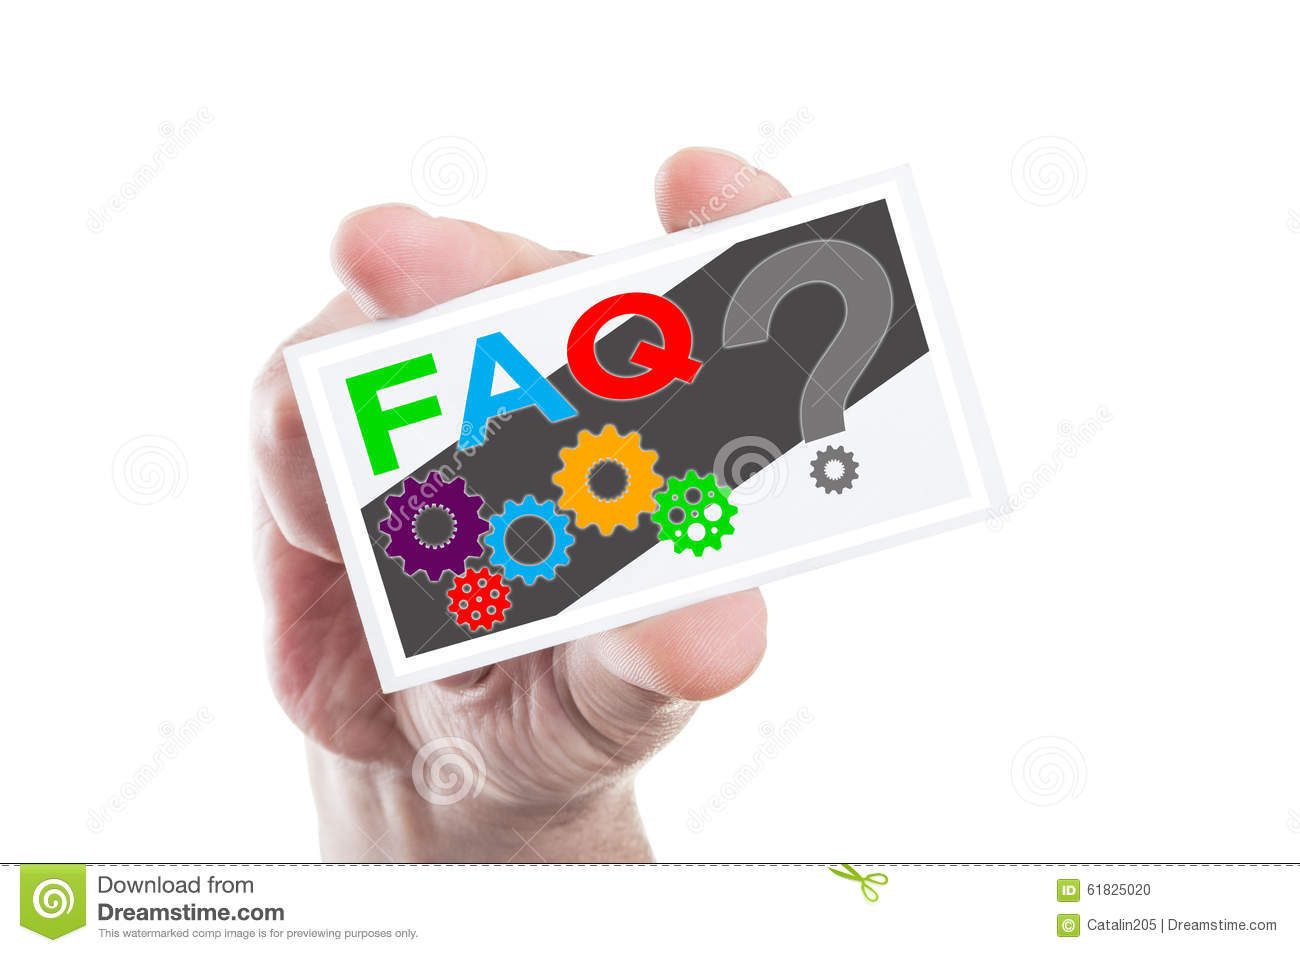 Hand holding FAQ or frequently asked questions card